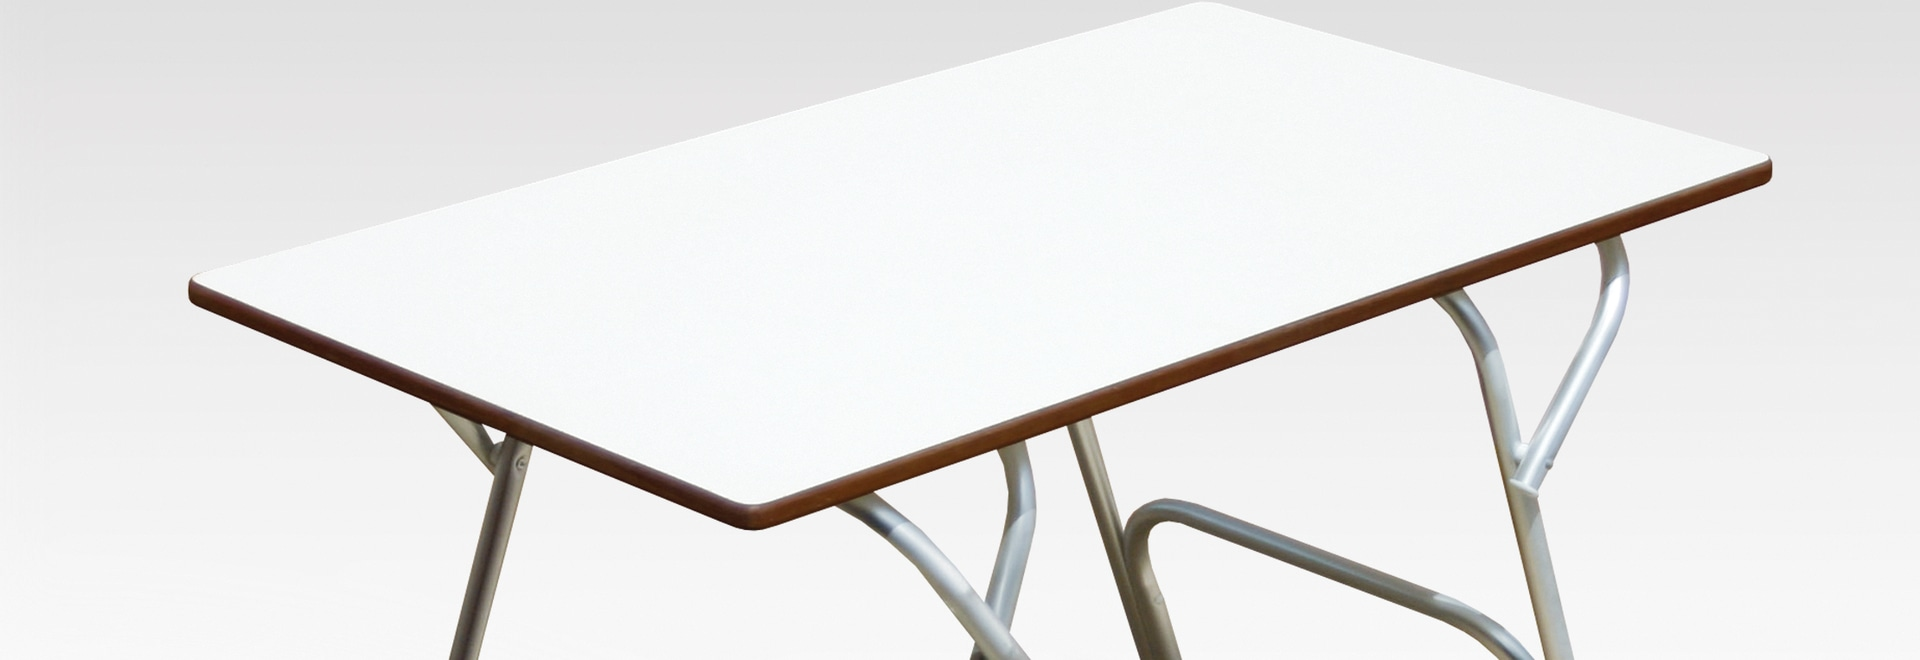 Practical, folding new FORMA deck tables made of plywood with formica